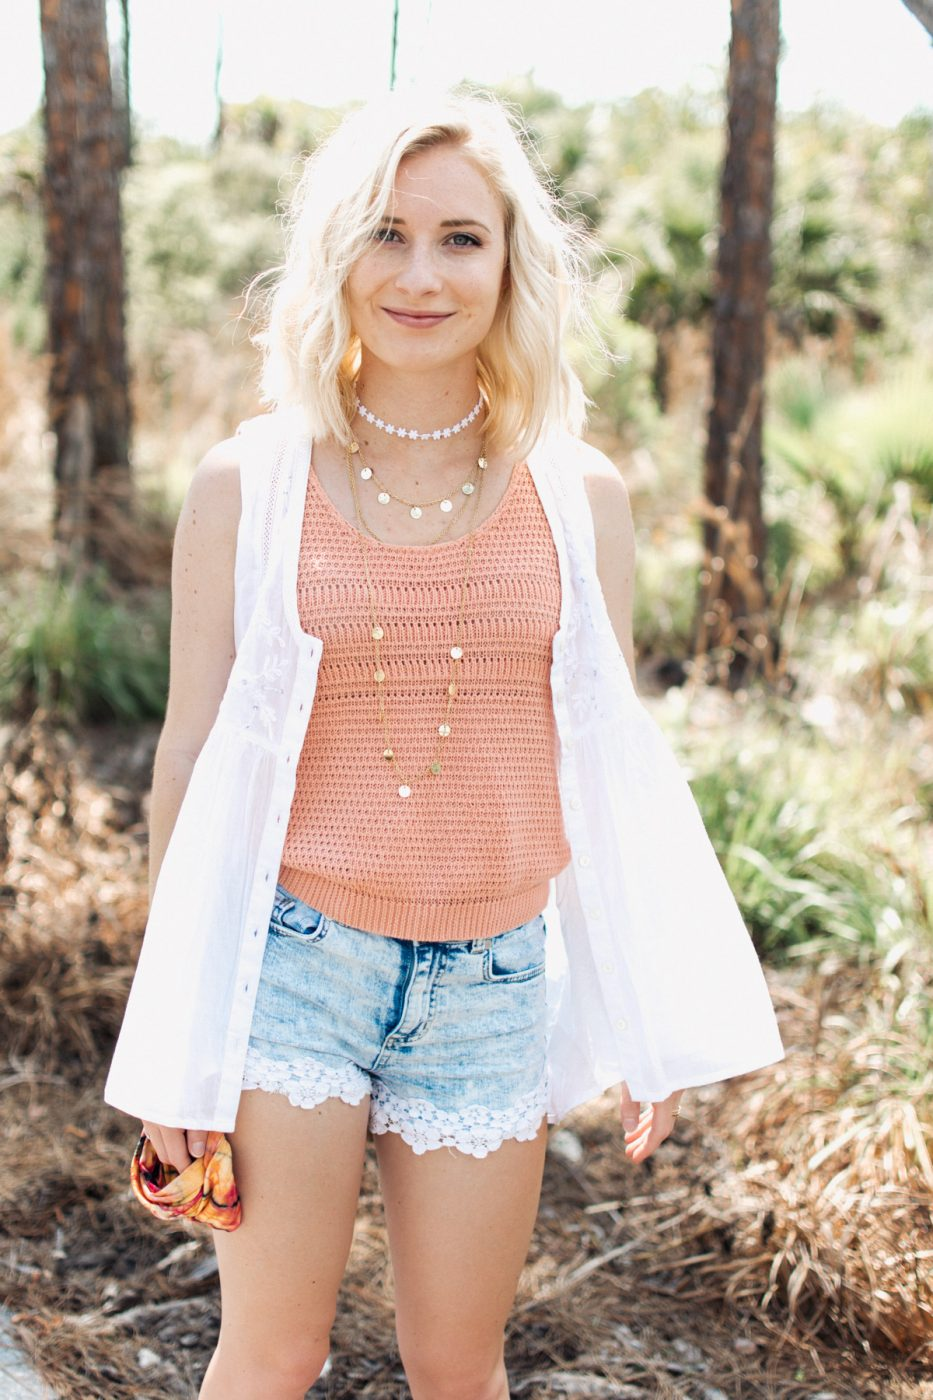 Natural Life white tank top worn by Jenny Bess of Sweet Teal for a festival outfit idea